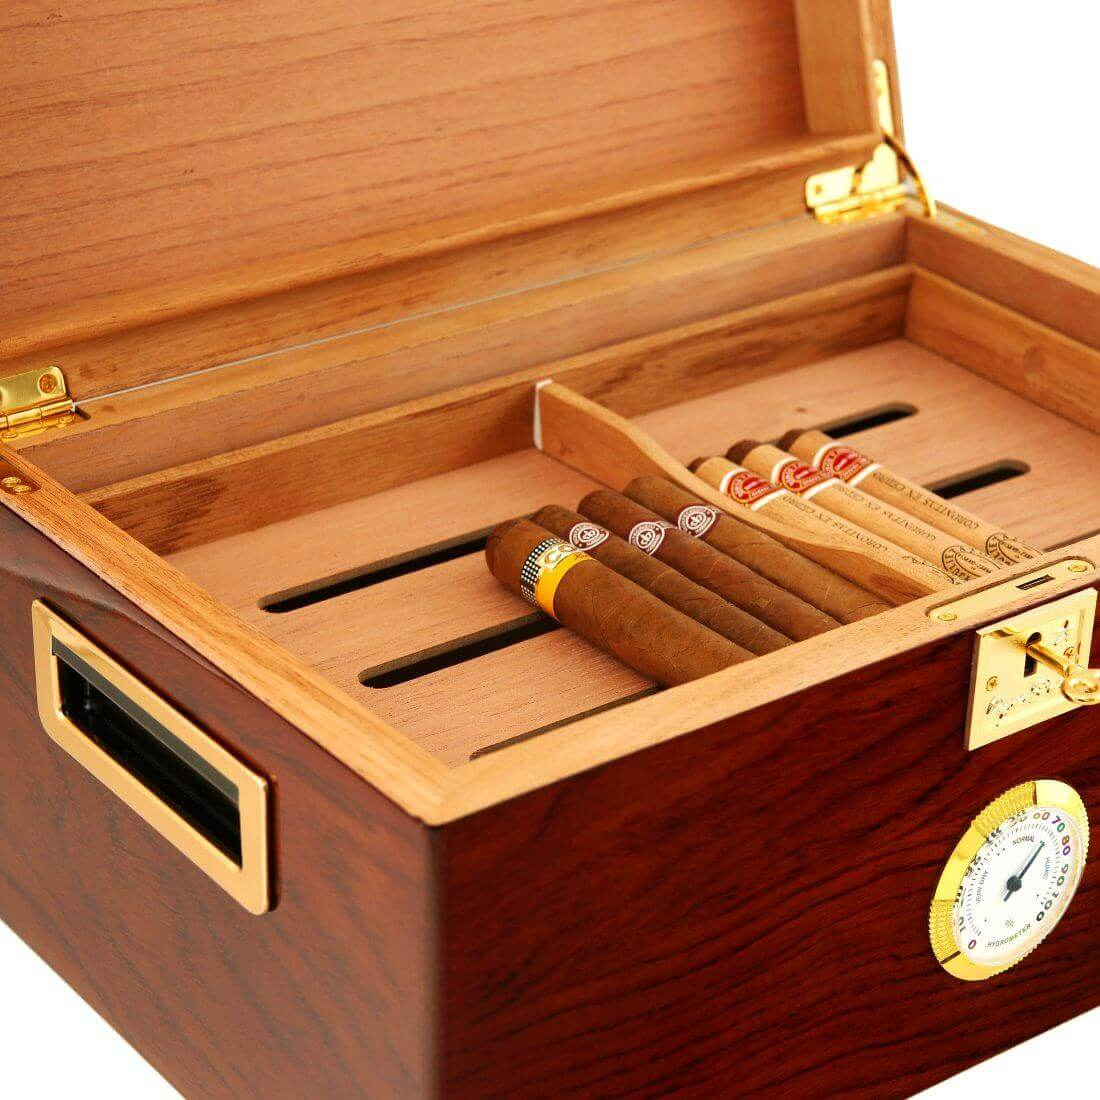 How long can a cigar last inside a cigar humidor?